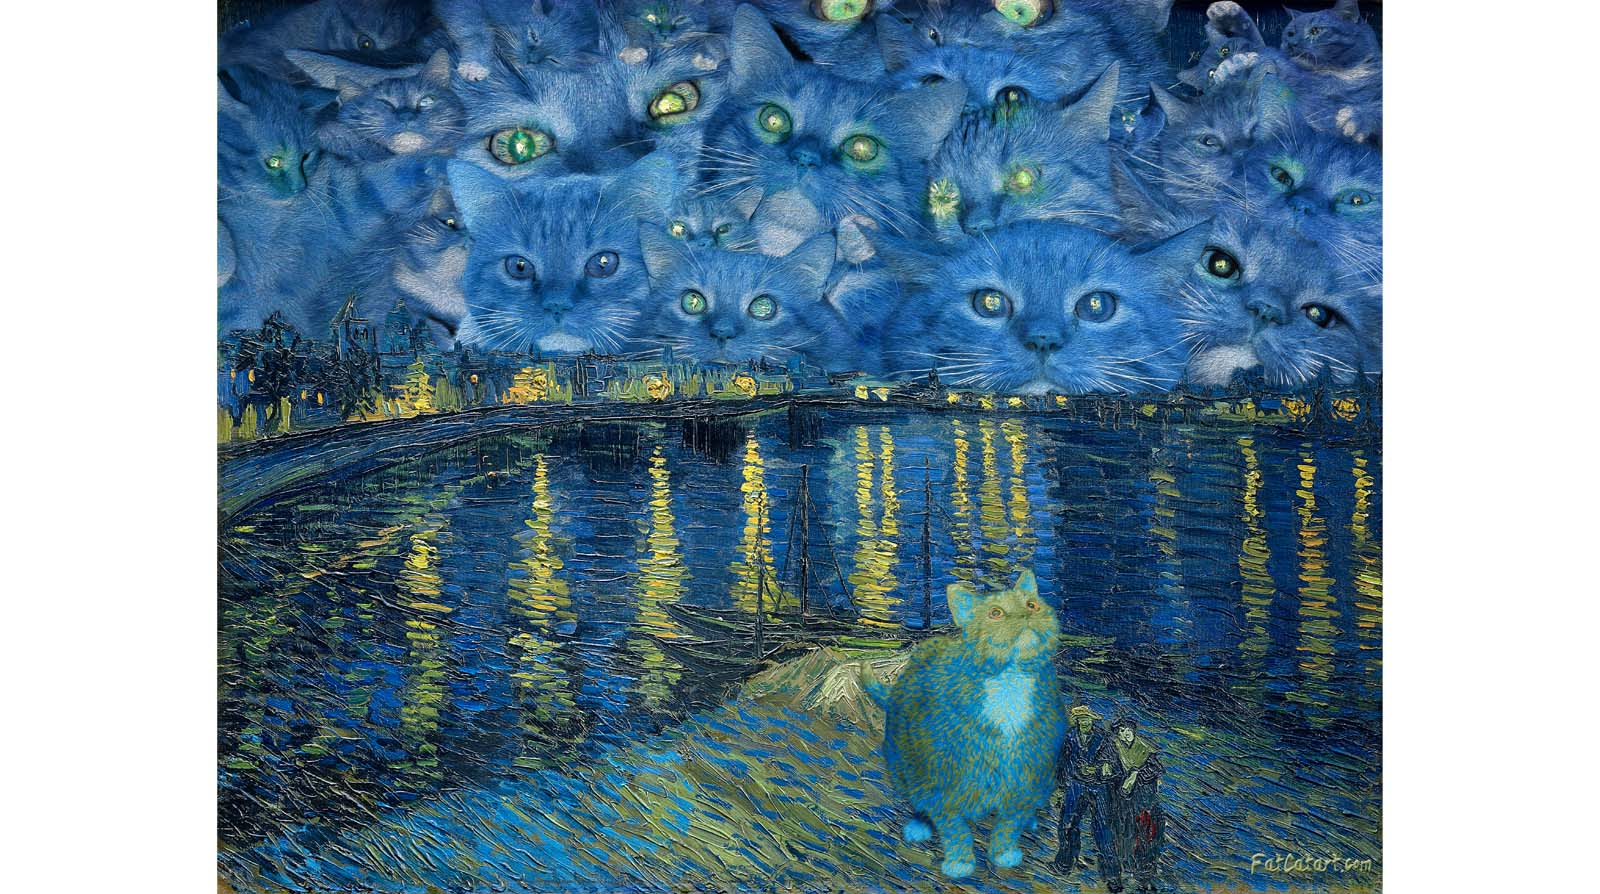 Vincent van Gogh. The Furry Starry Night over the Rhone